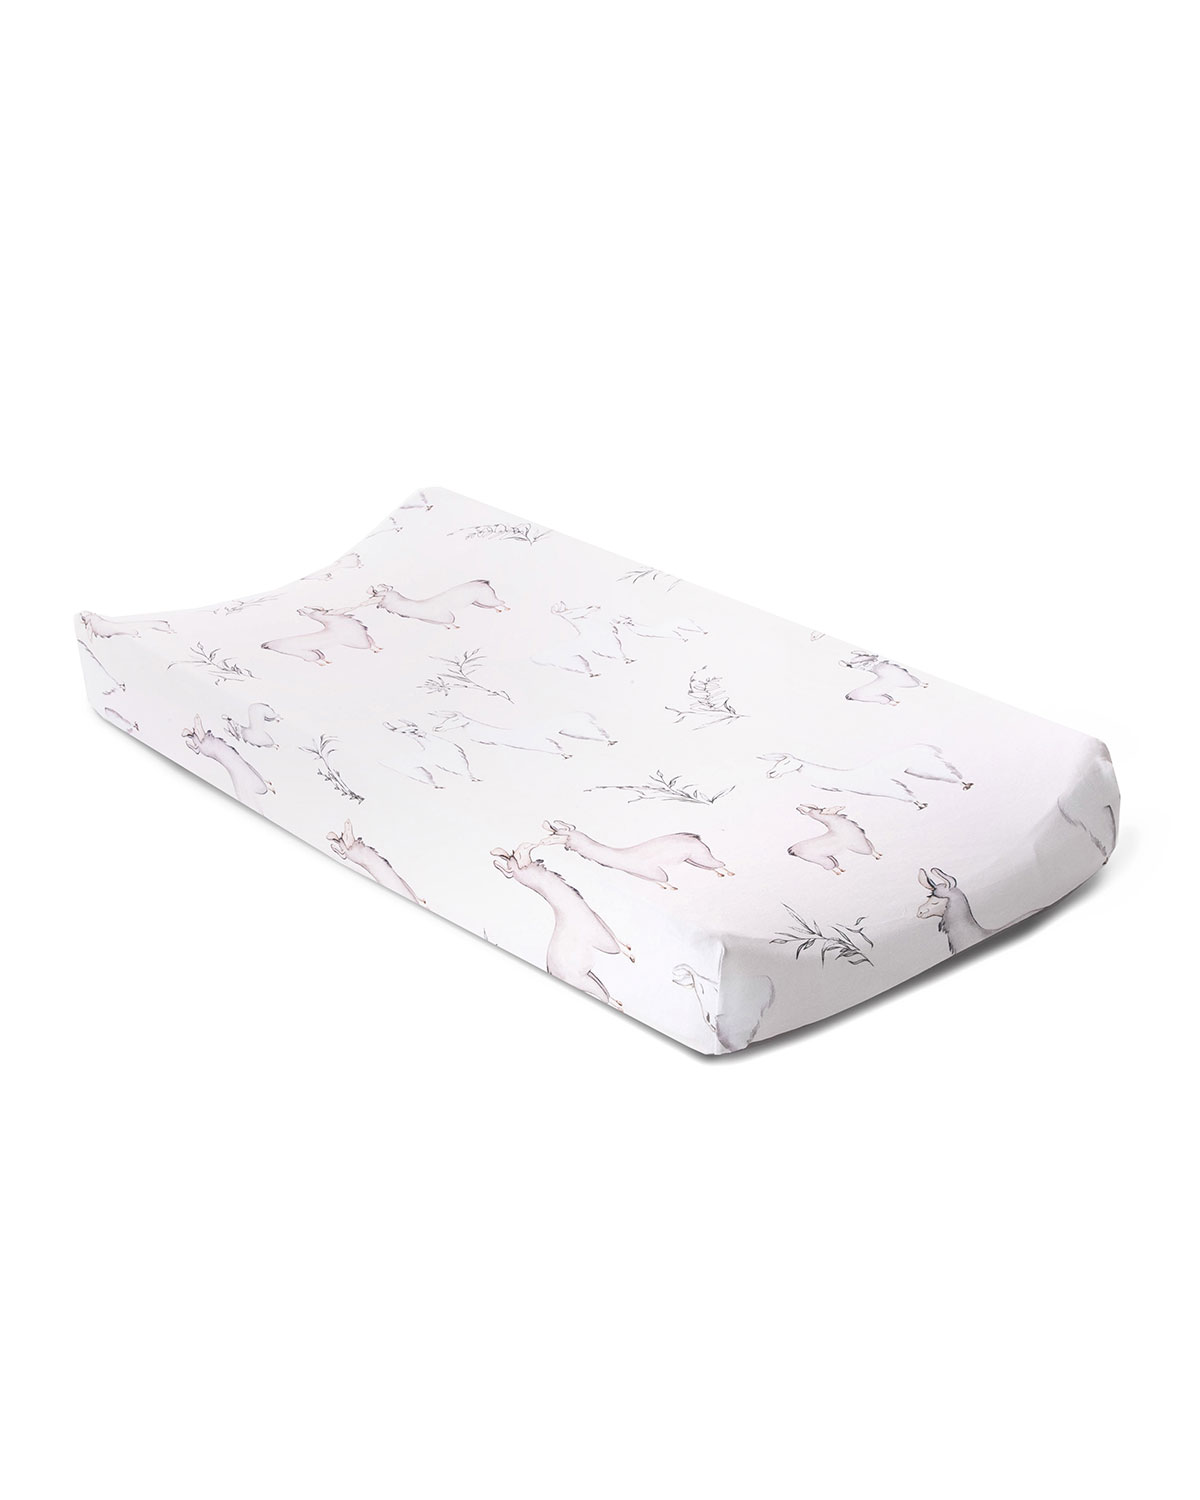 Oilo Studio Llama Jersey Changing Pad Cover